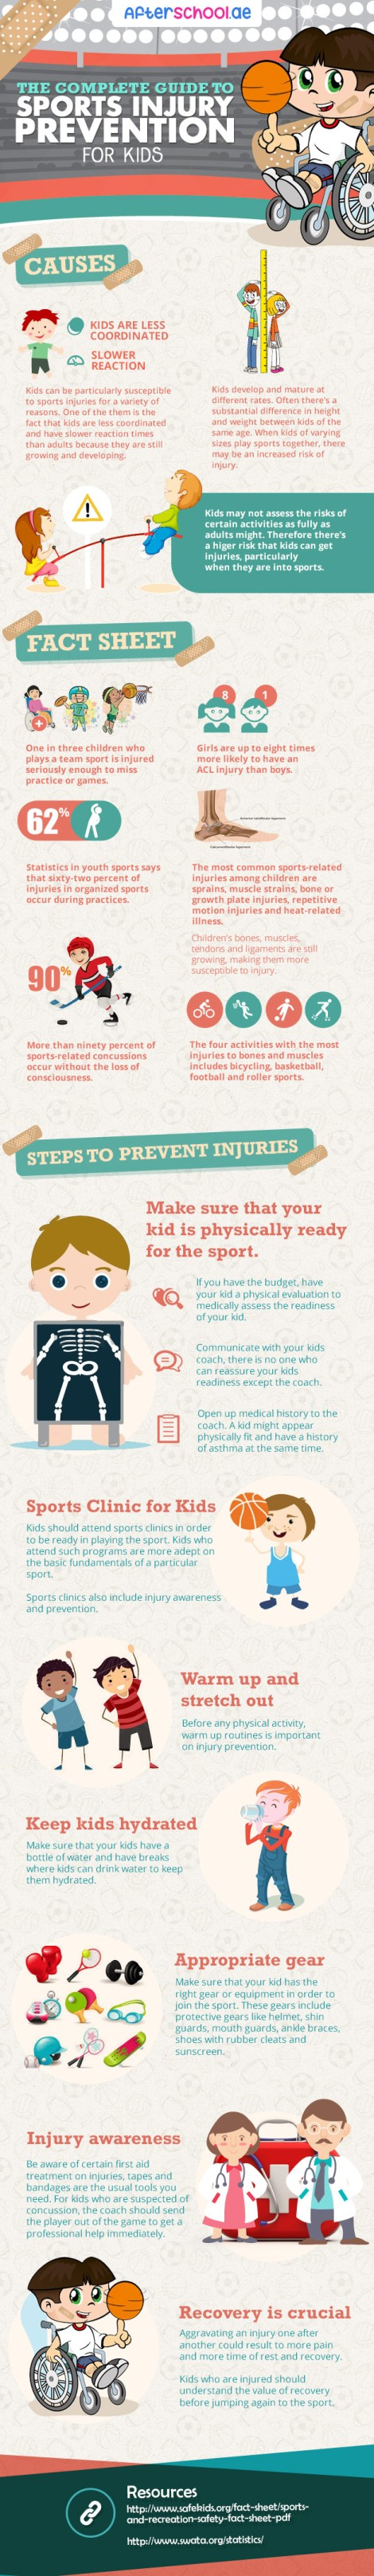 sports-injury-prevention-afterschoolAE